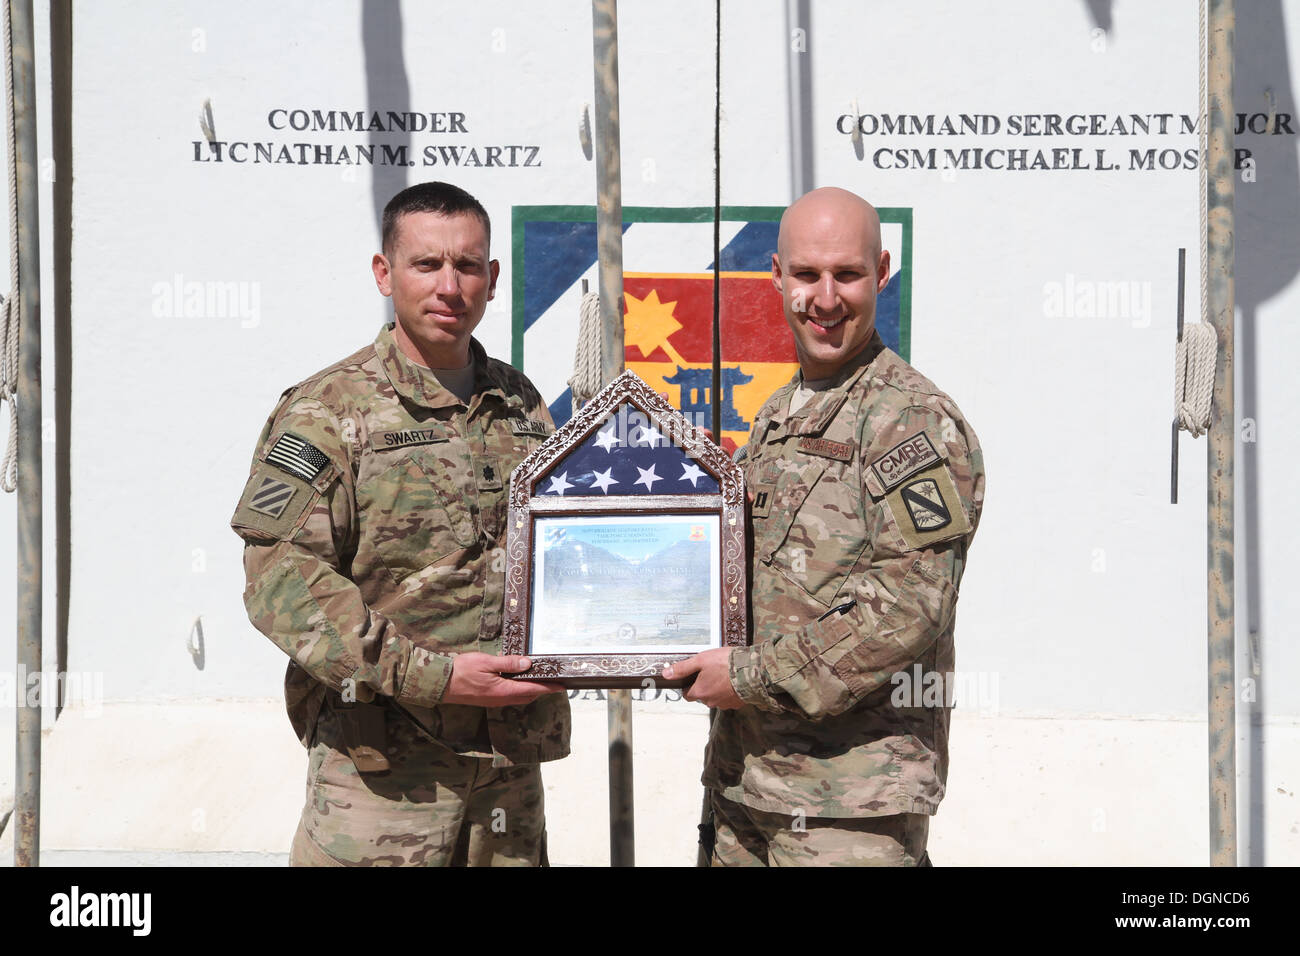 U.S. Air Force Capt. Jared King (right), a Forrest Hill, Md., native and cyber warfare operator attached to Central Command's Materiel Recovery Element, receives a flag and certificate from U.S. Army Lt. Col. Nathan Swartz, a native of Tullahoma, Tenn., a - Stock Image